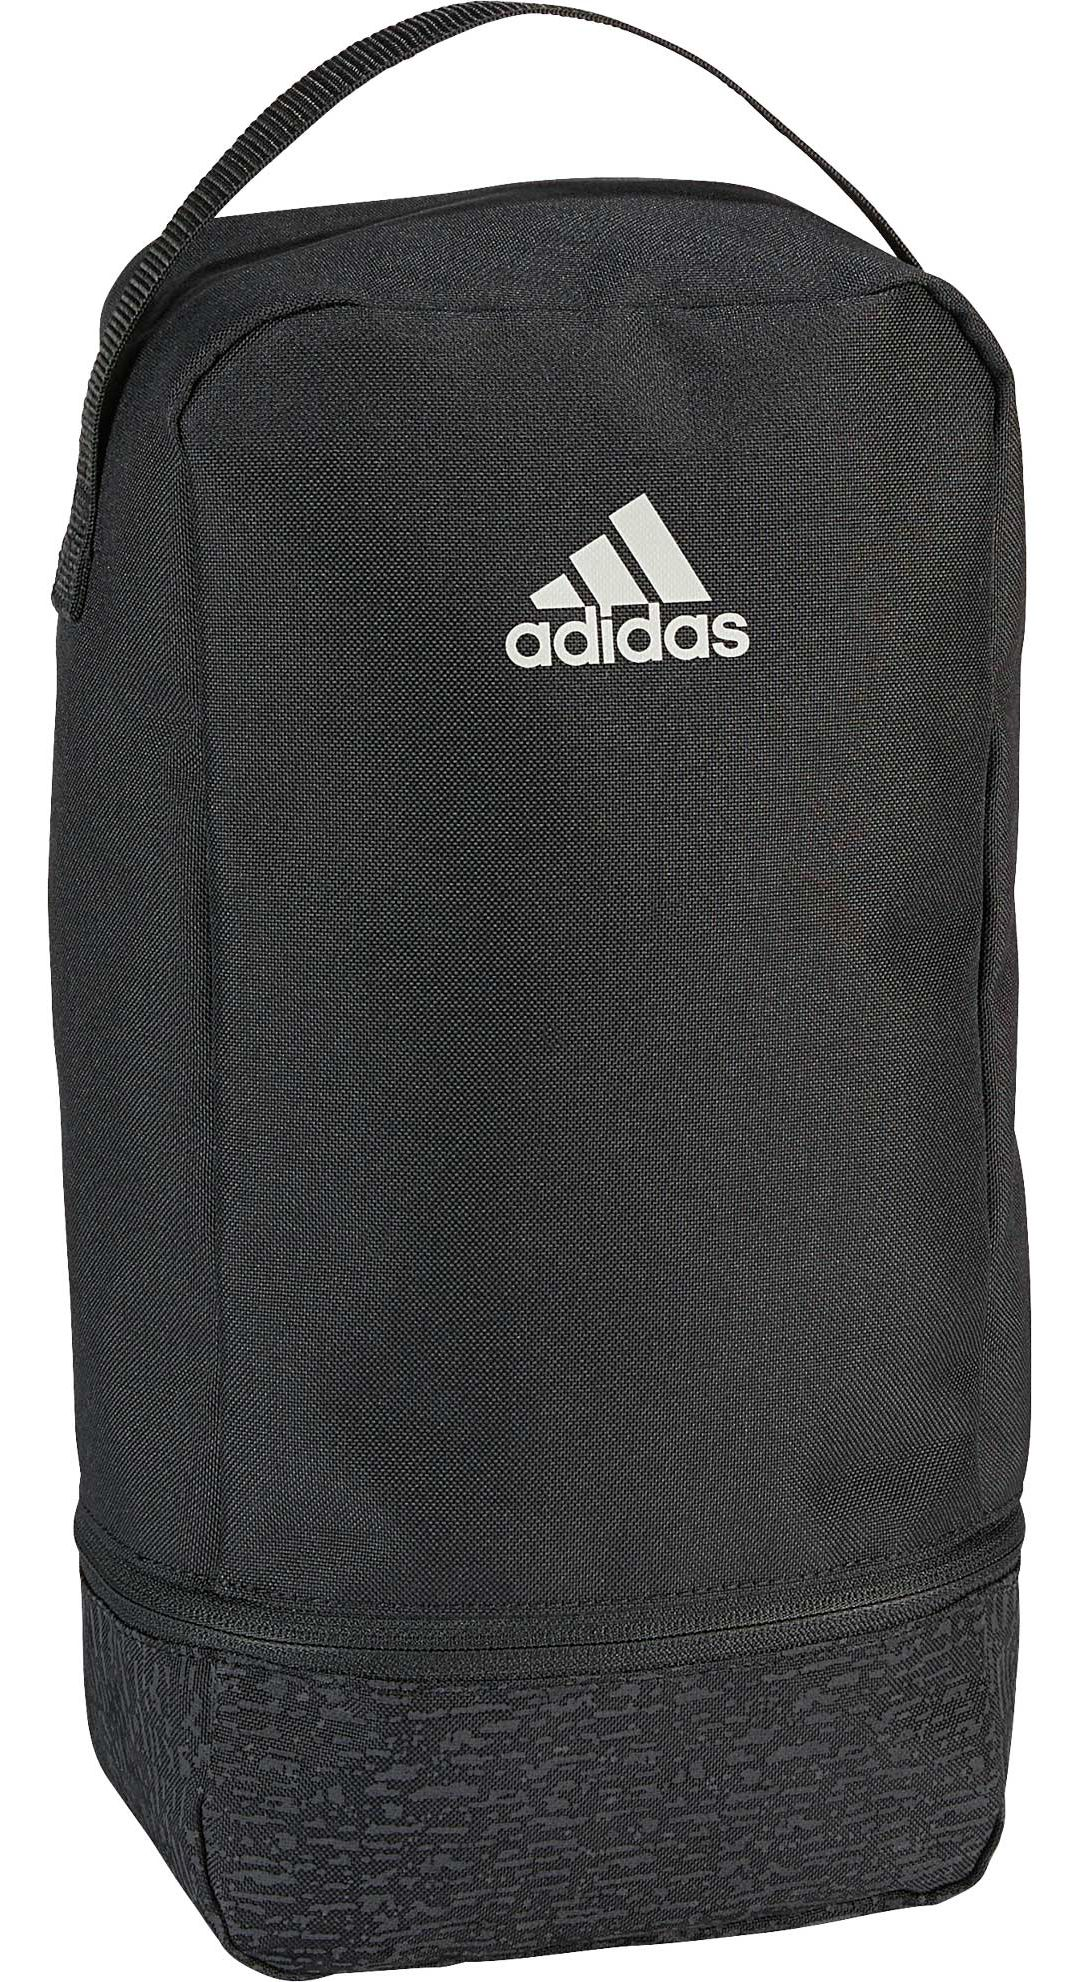 adidas Golf Shoe Bag DICK'S Sportsartikler  DICK'S Sporting Goods